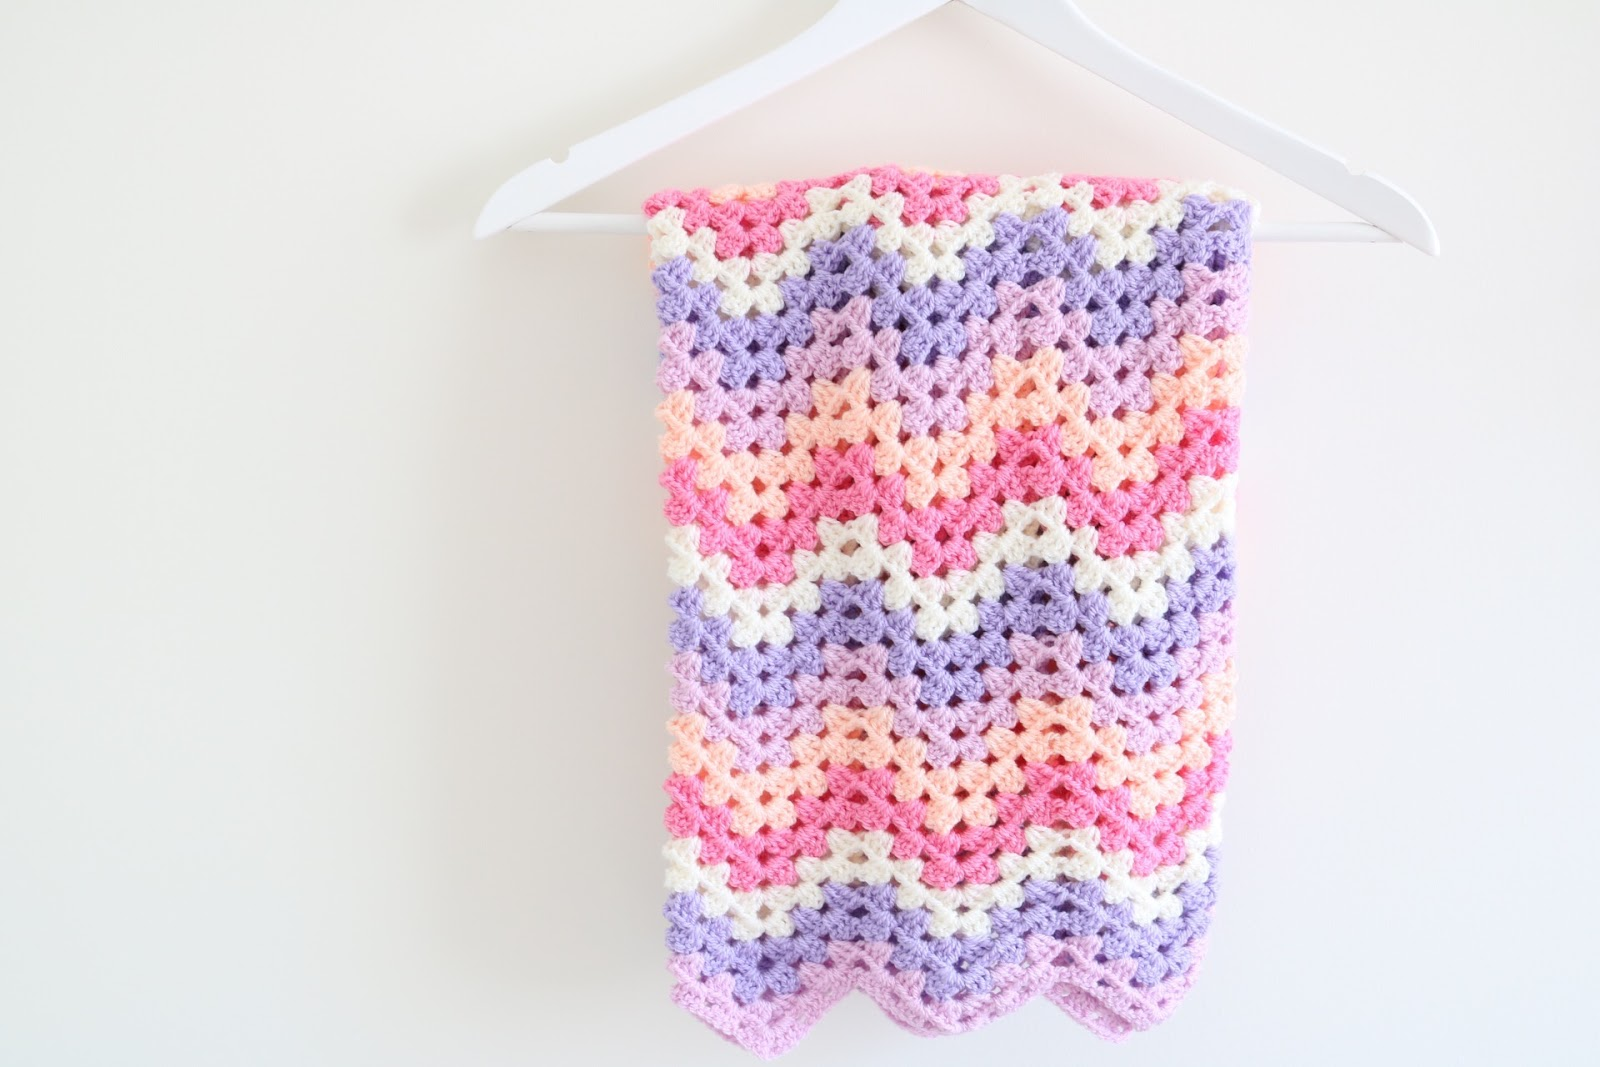 Crochet Granny Chevron Blanket Tutorial Bella Coco By Sarah Jayne